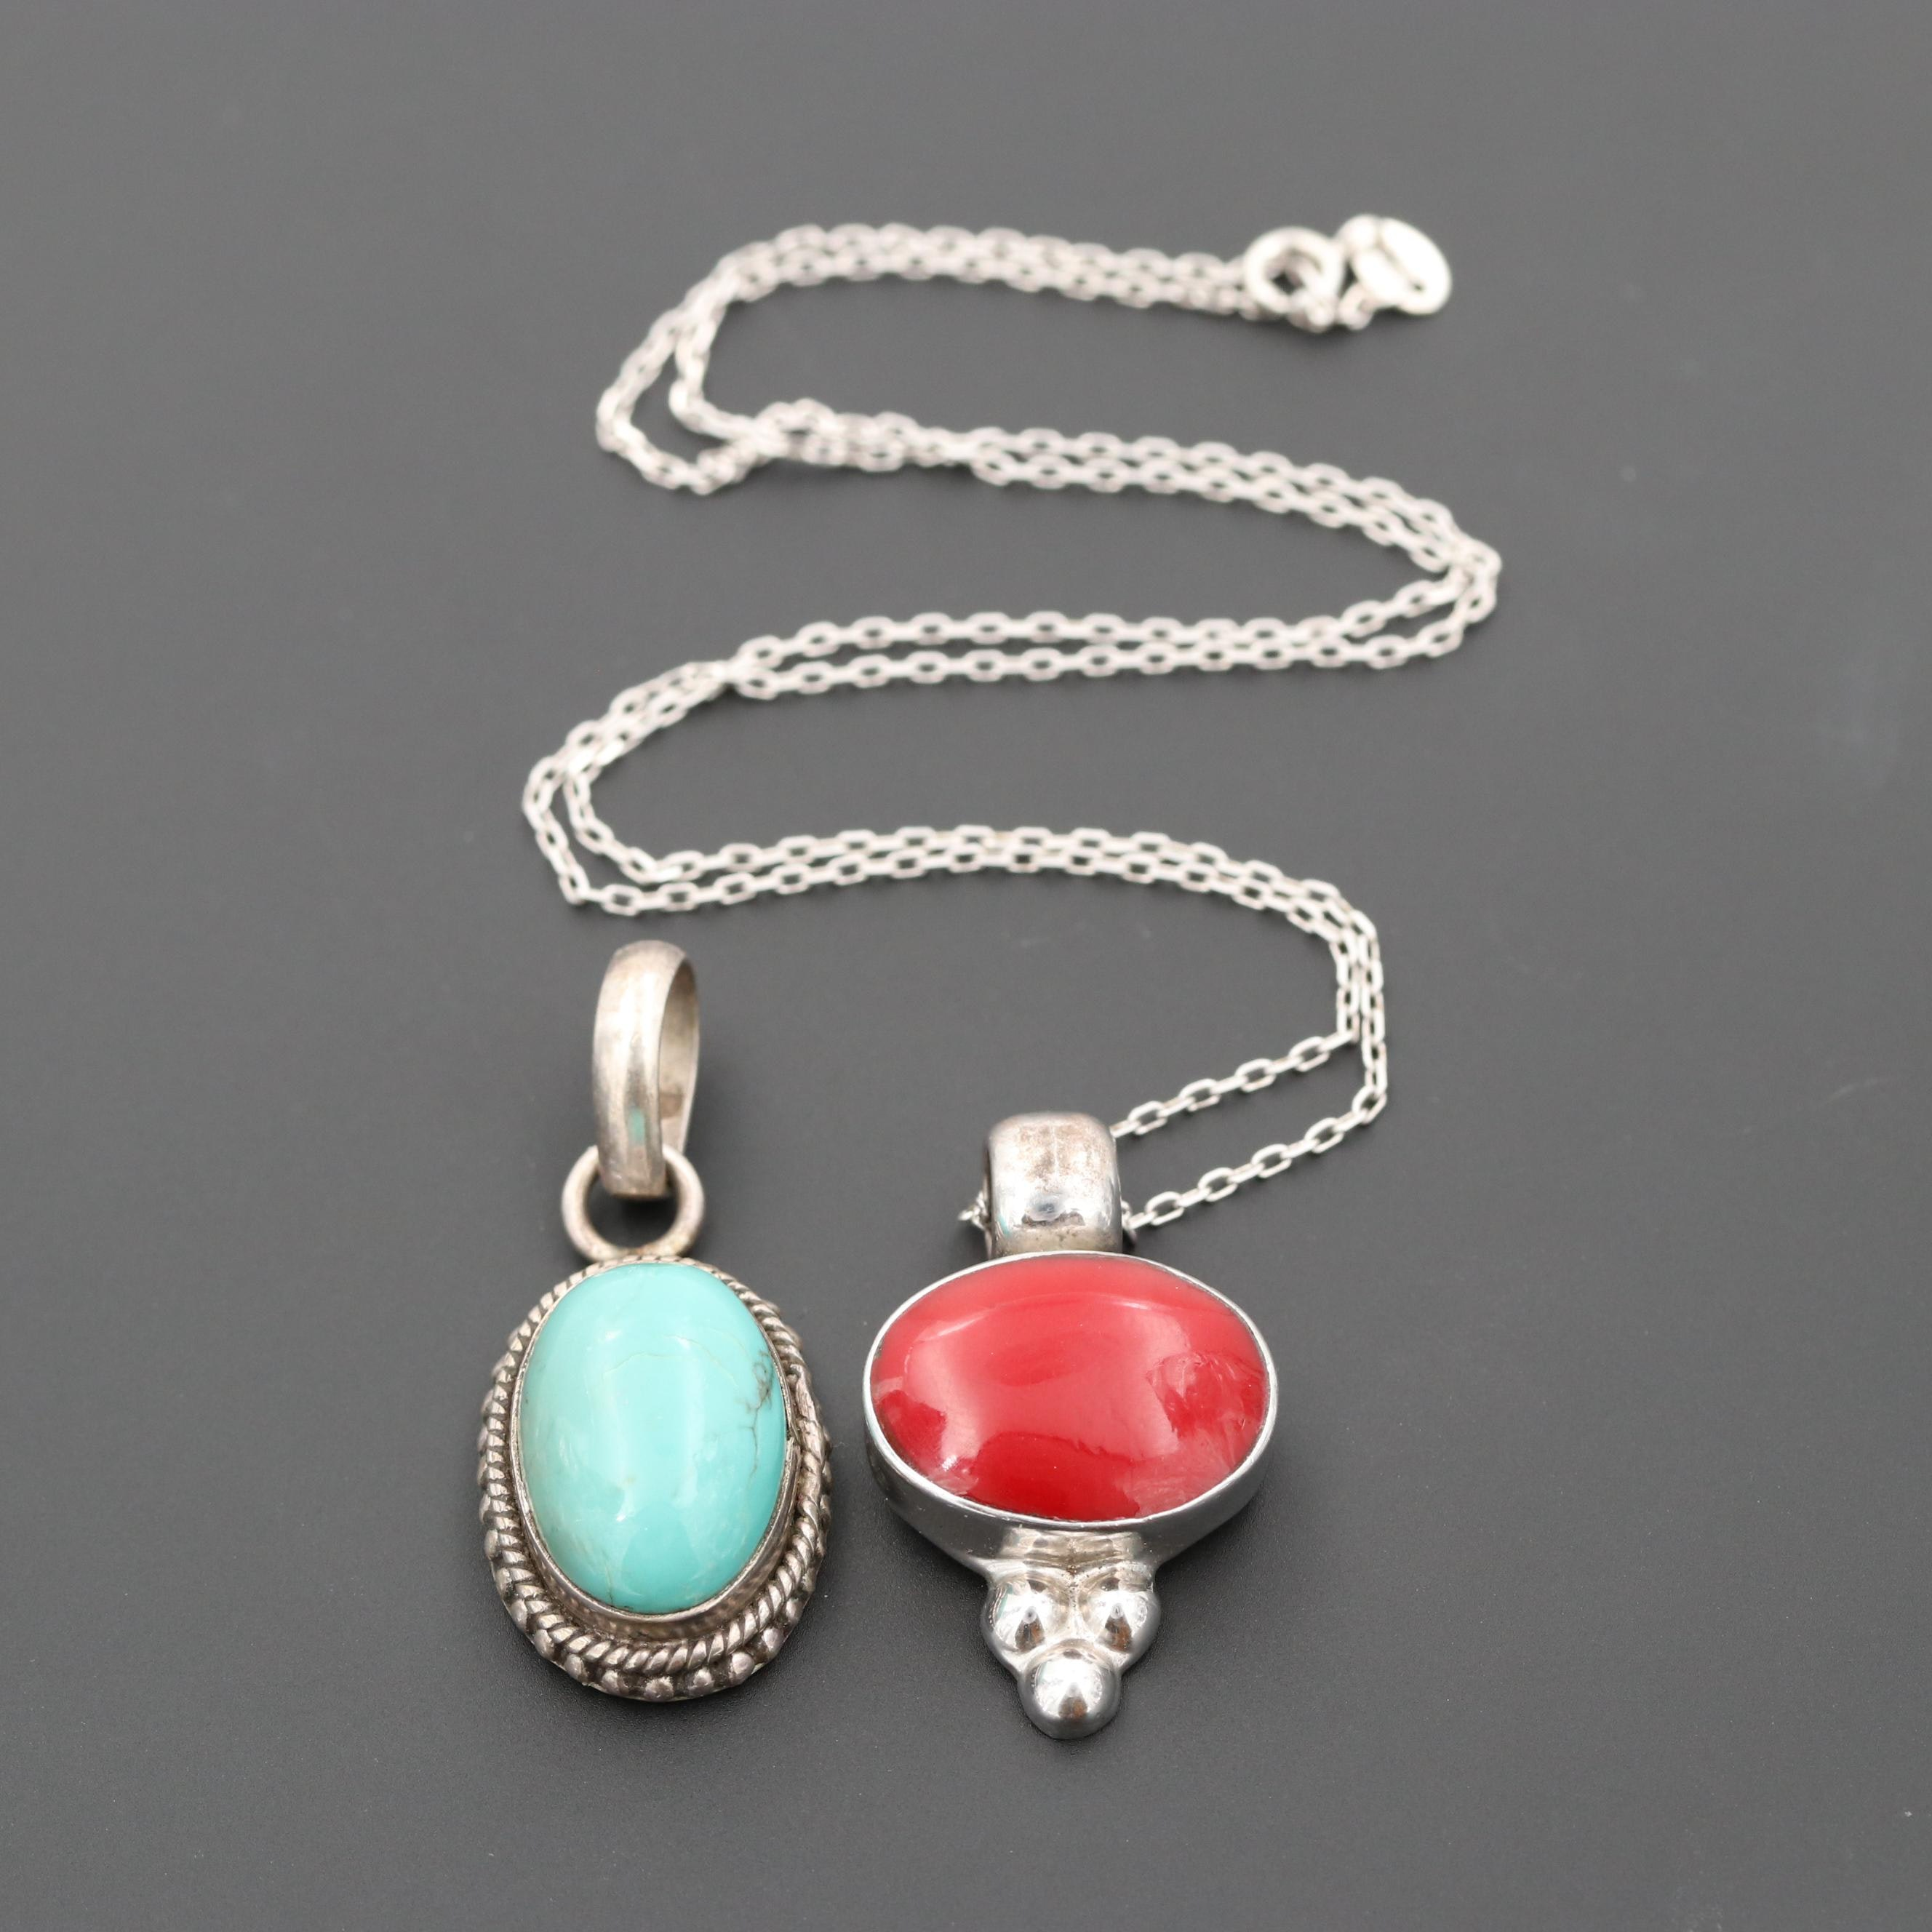 Sterling Silver Resin and Turquoise Necklace and Pendants